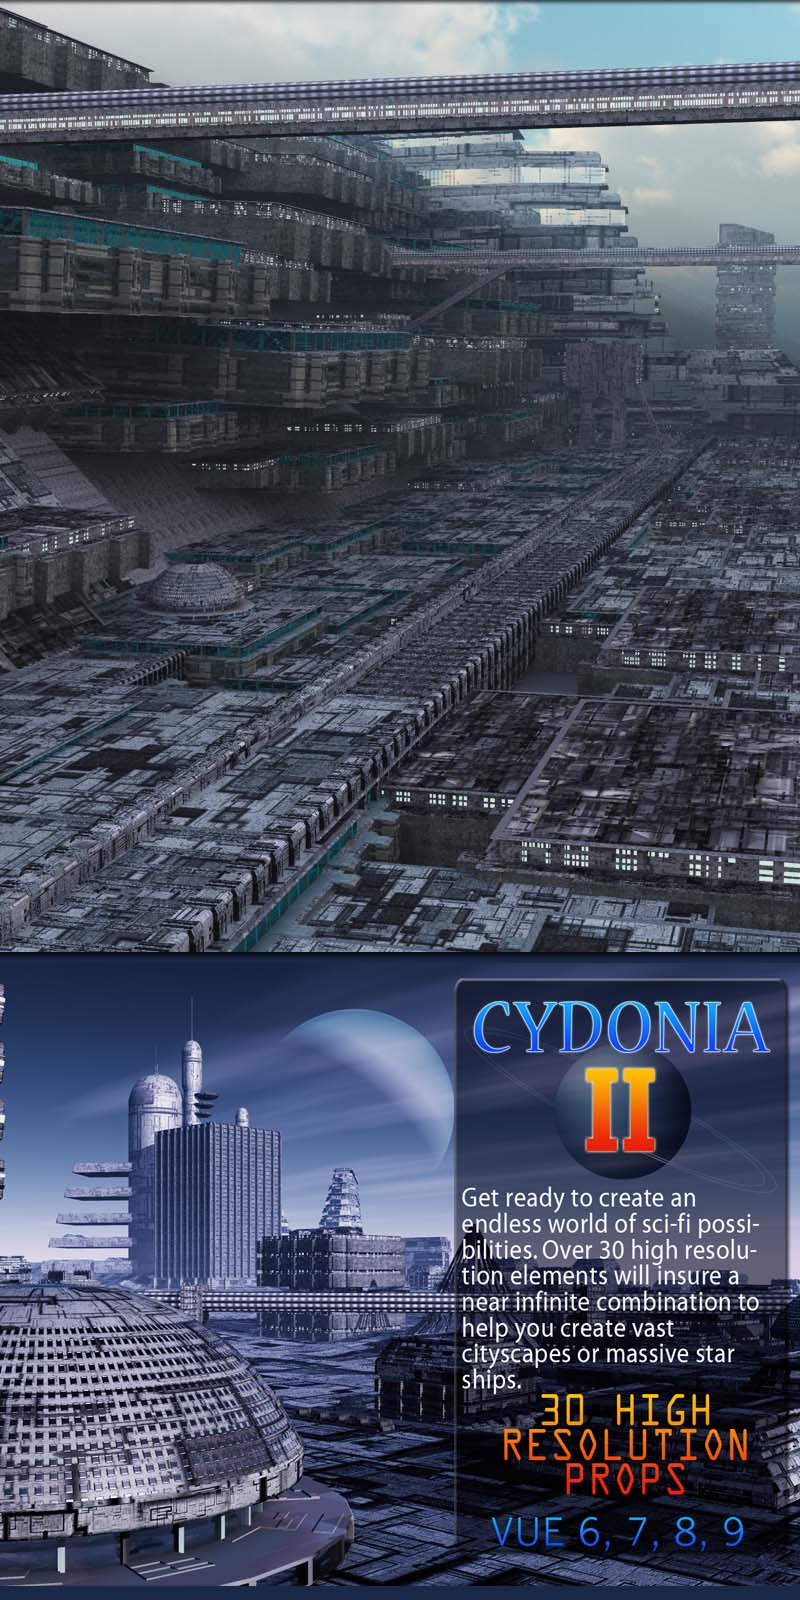 Cydonia 2 (Sci-fi Construction Set)